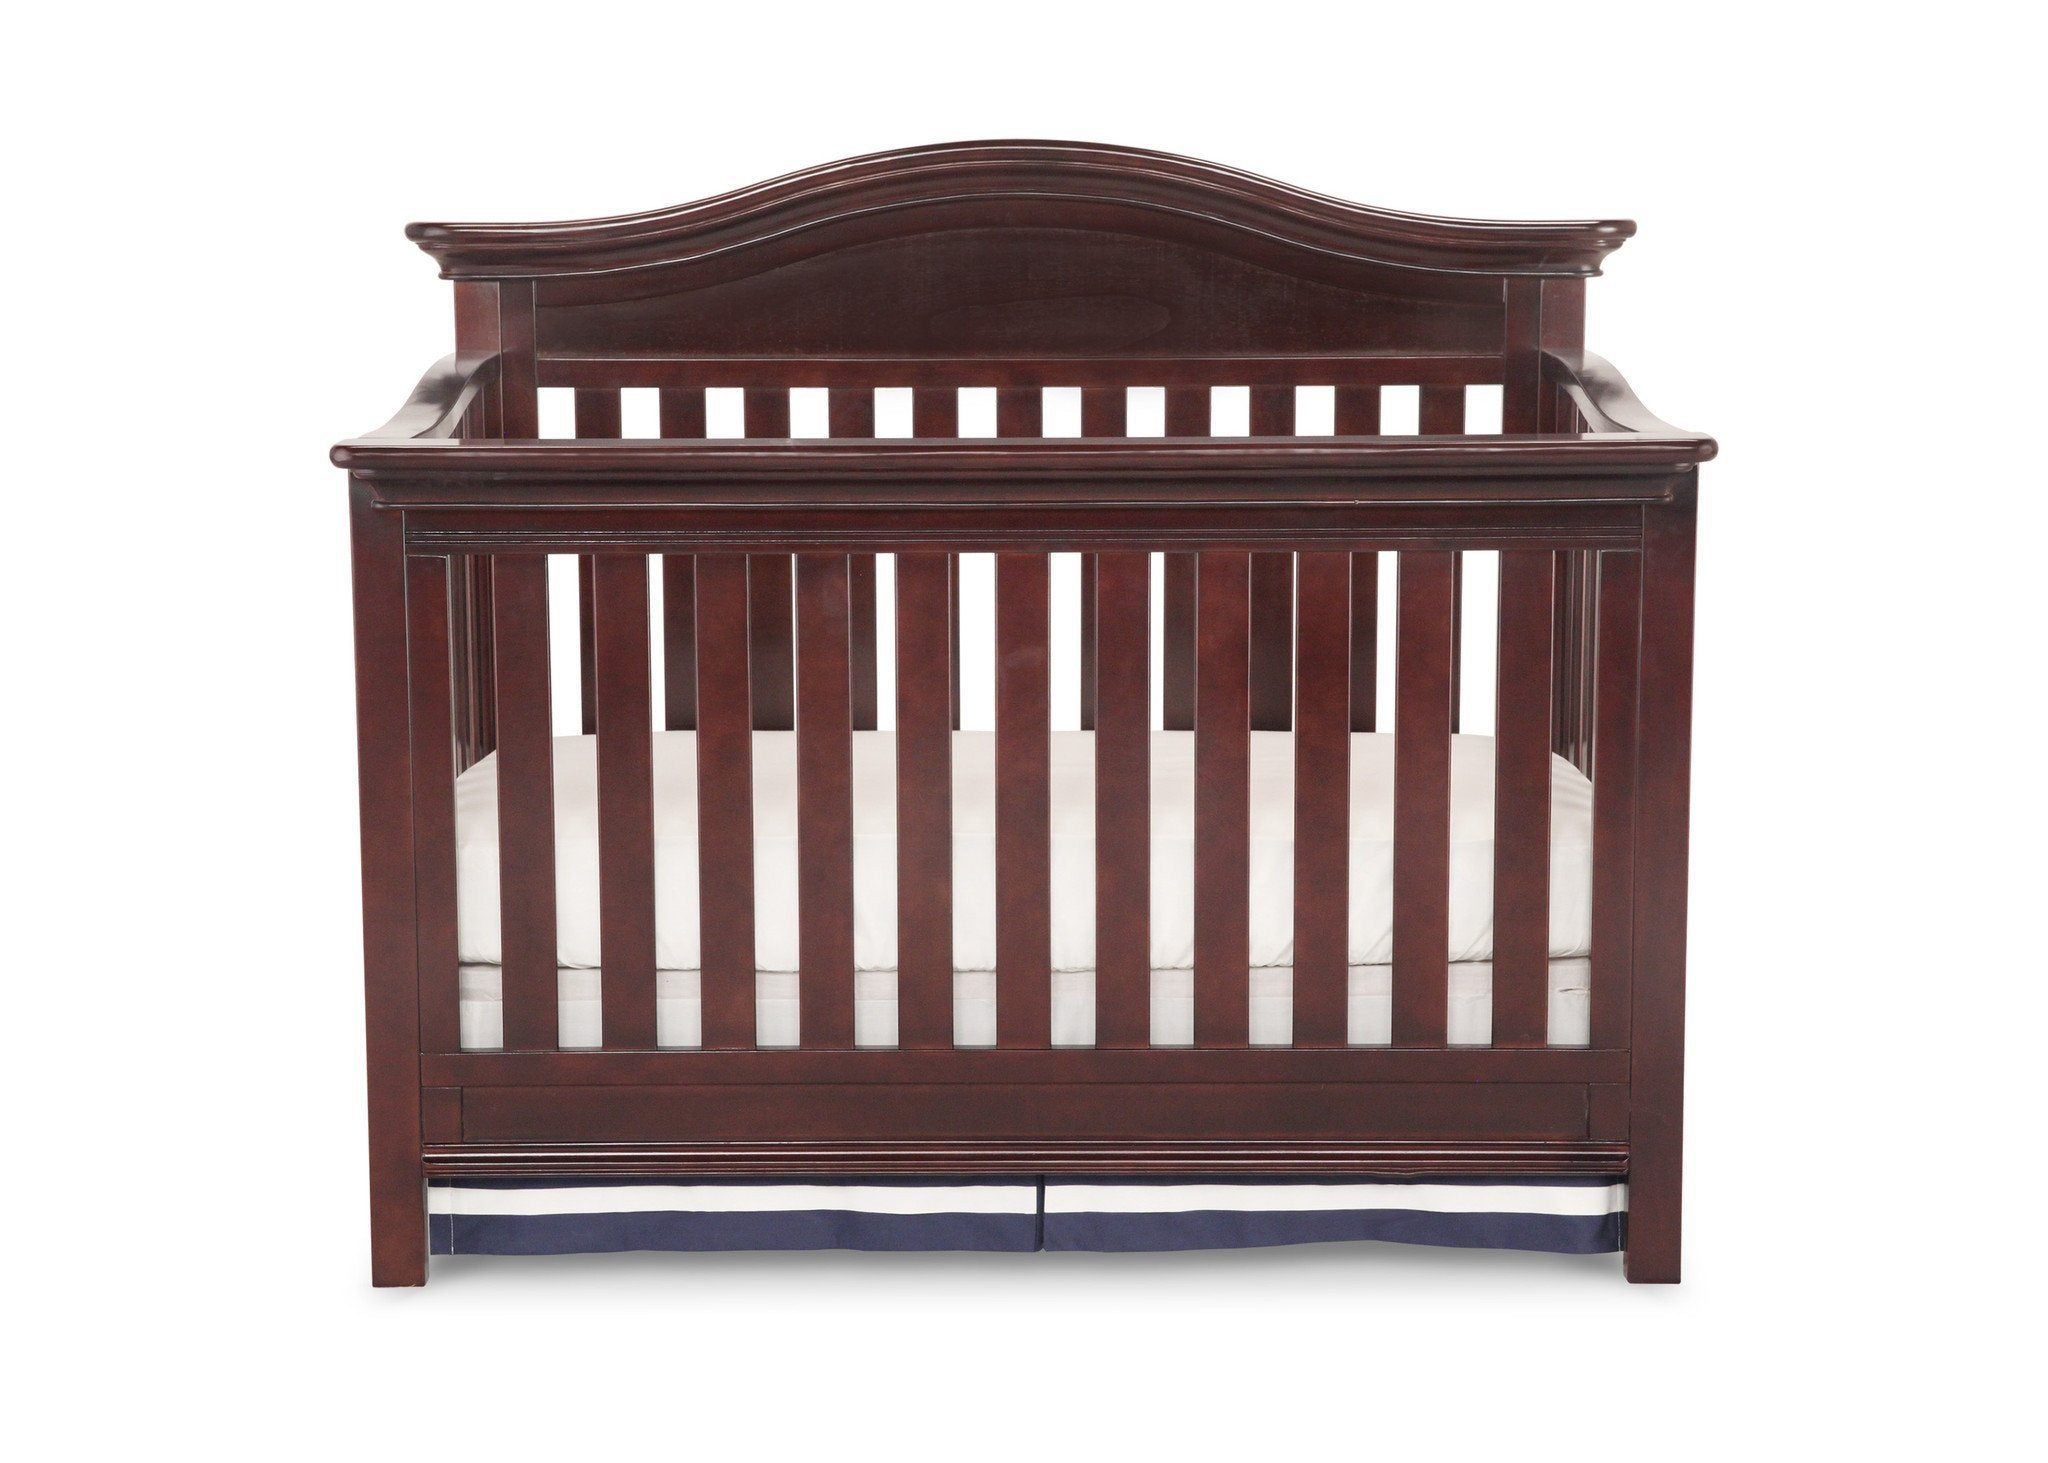 Simmons Kids Molasses (226) Augusta Crib 'N' More (309180), Crib Conversion Front View a1a